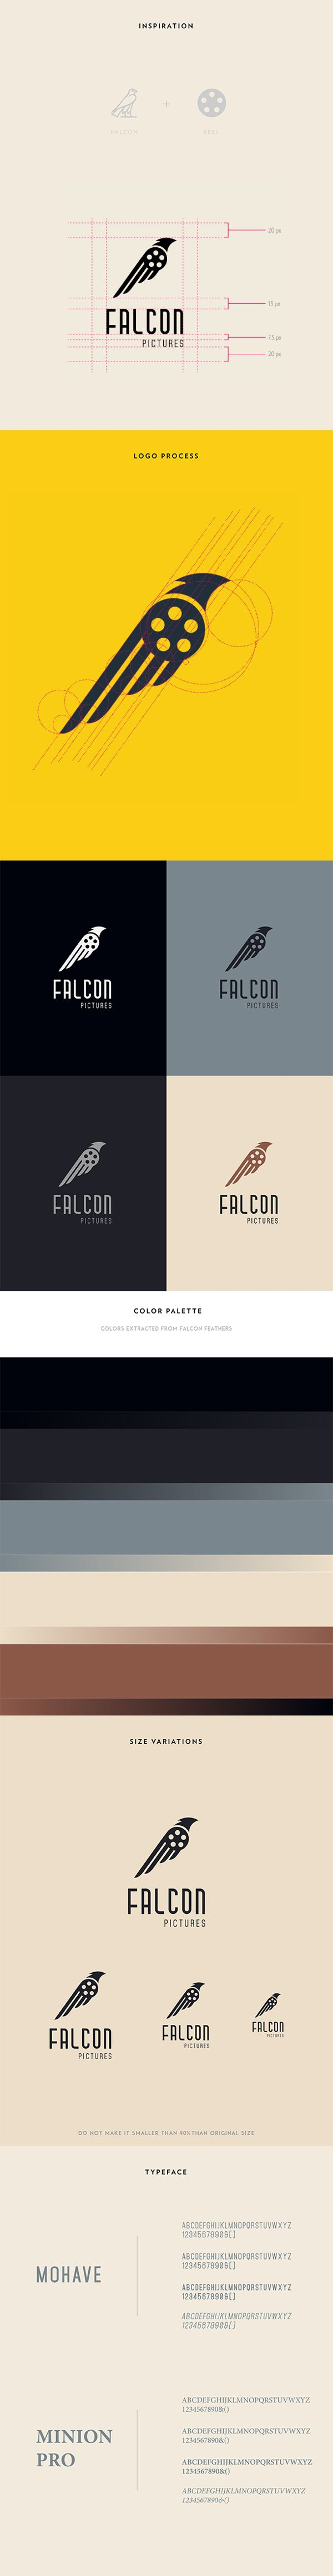 Falcon Pictures Logo Design by Grunz Saint, via Behance